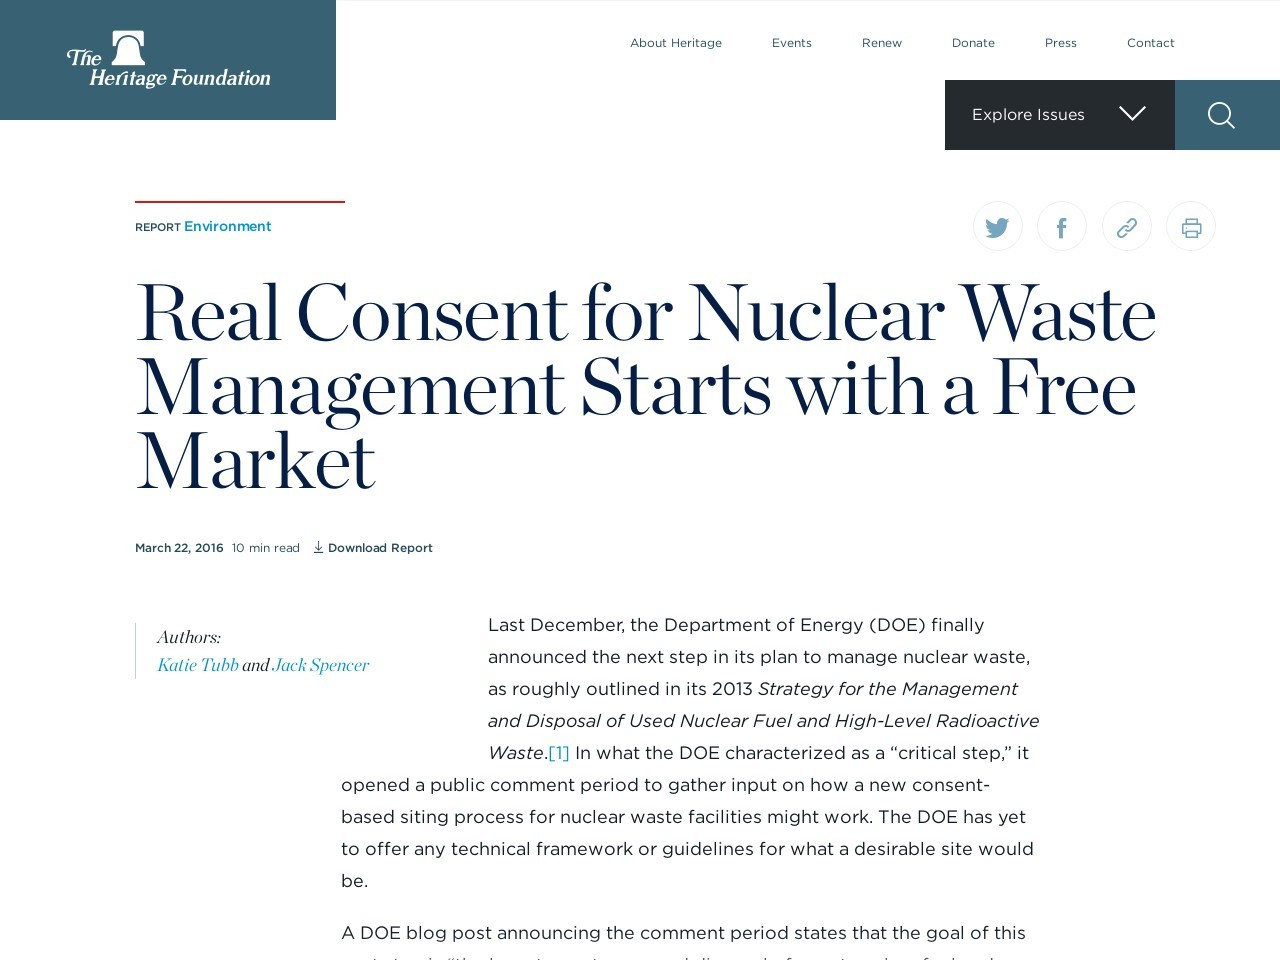 Real Consent for Nuclear Waste Management Starts with a Free Market